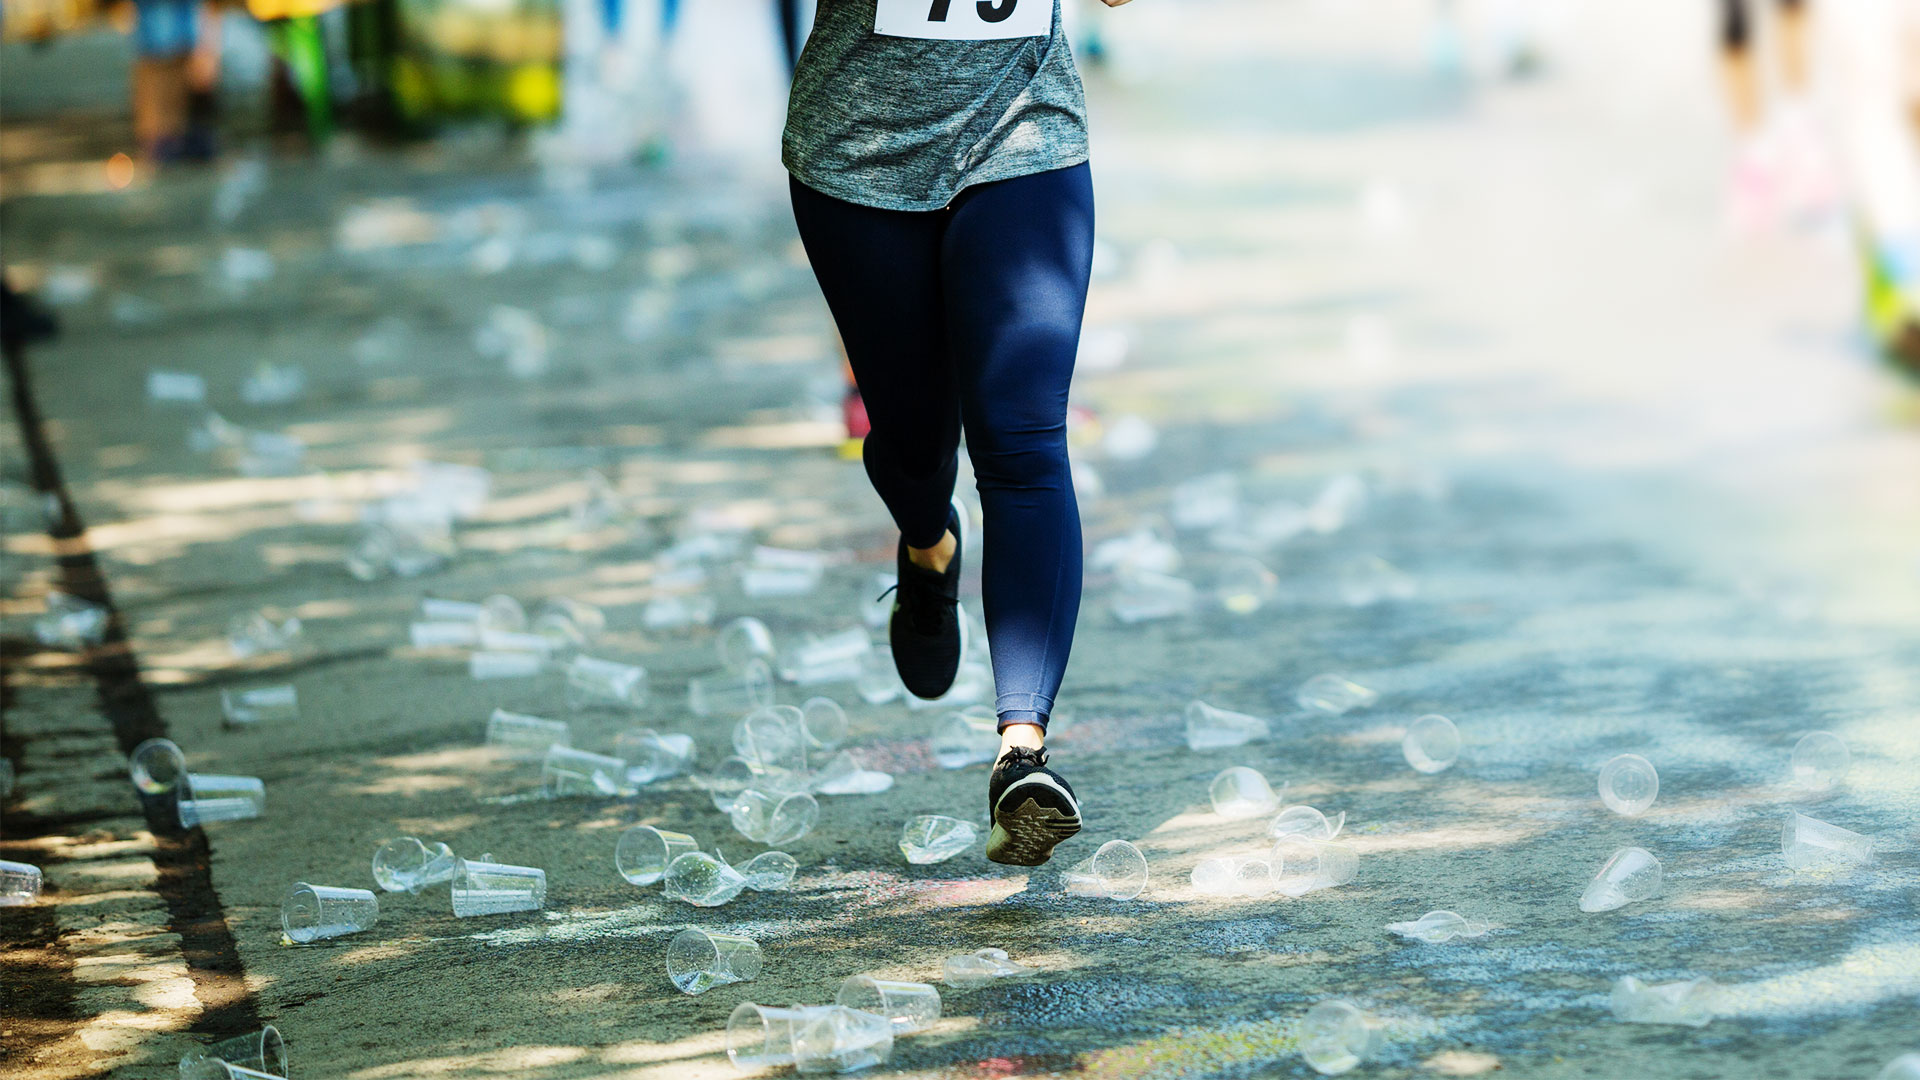 Runner running through road covered in plastic cups